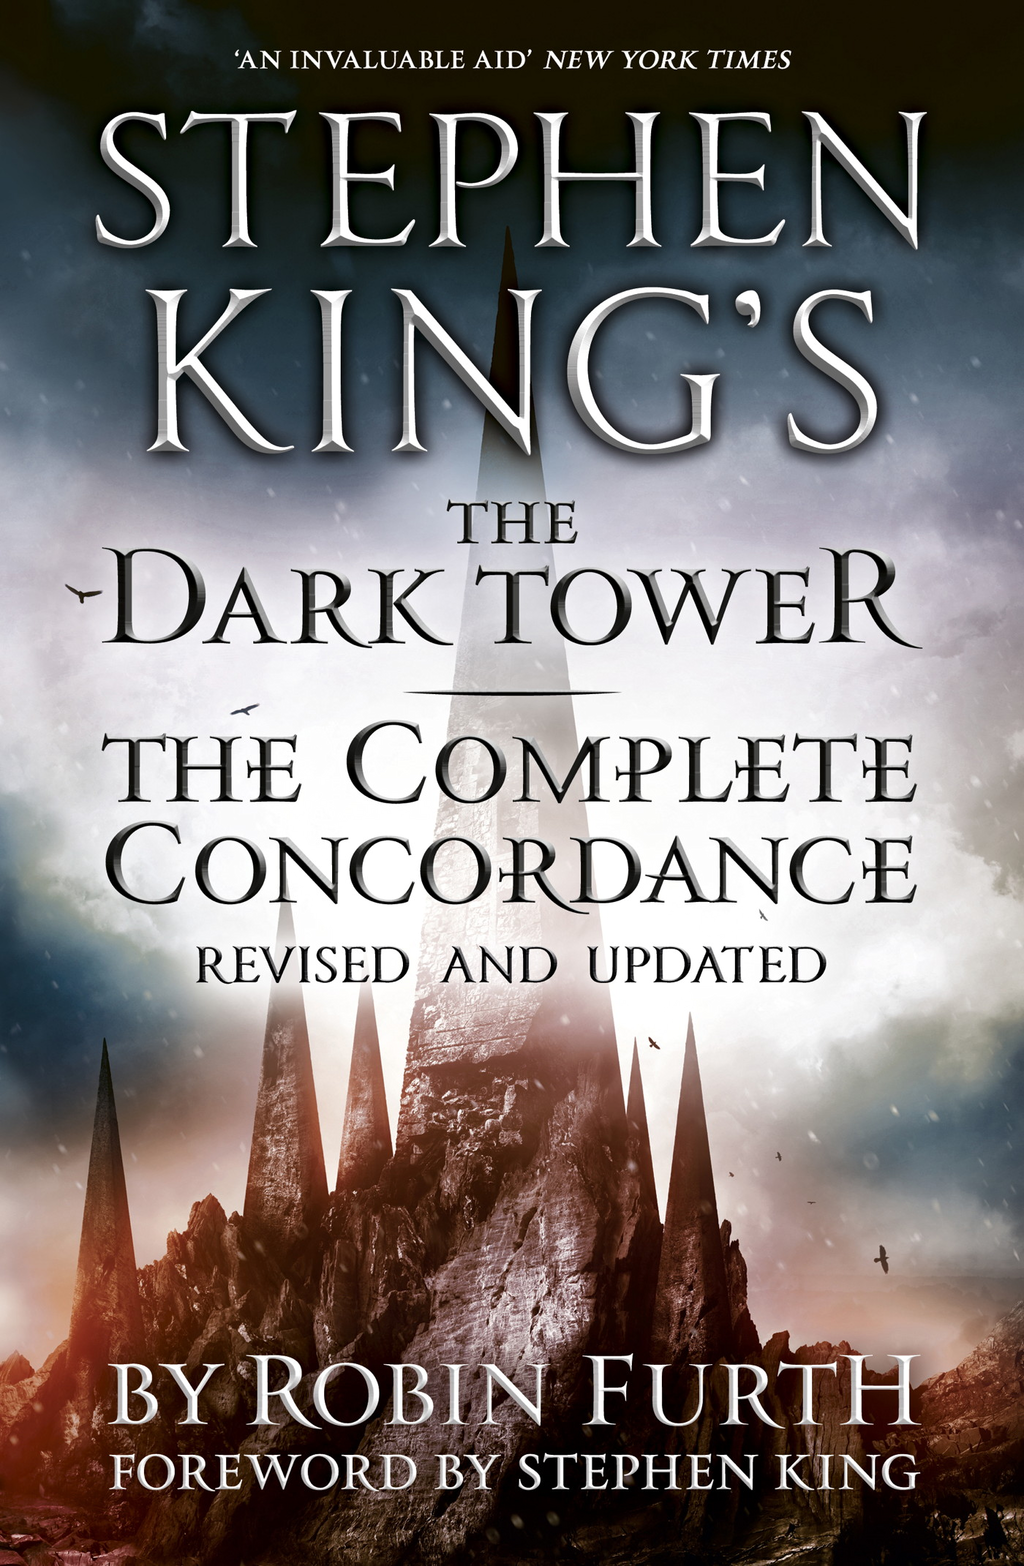 Stephen King's The Dark Tower: The Complete Concordance Revised and Updated